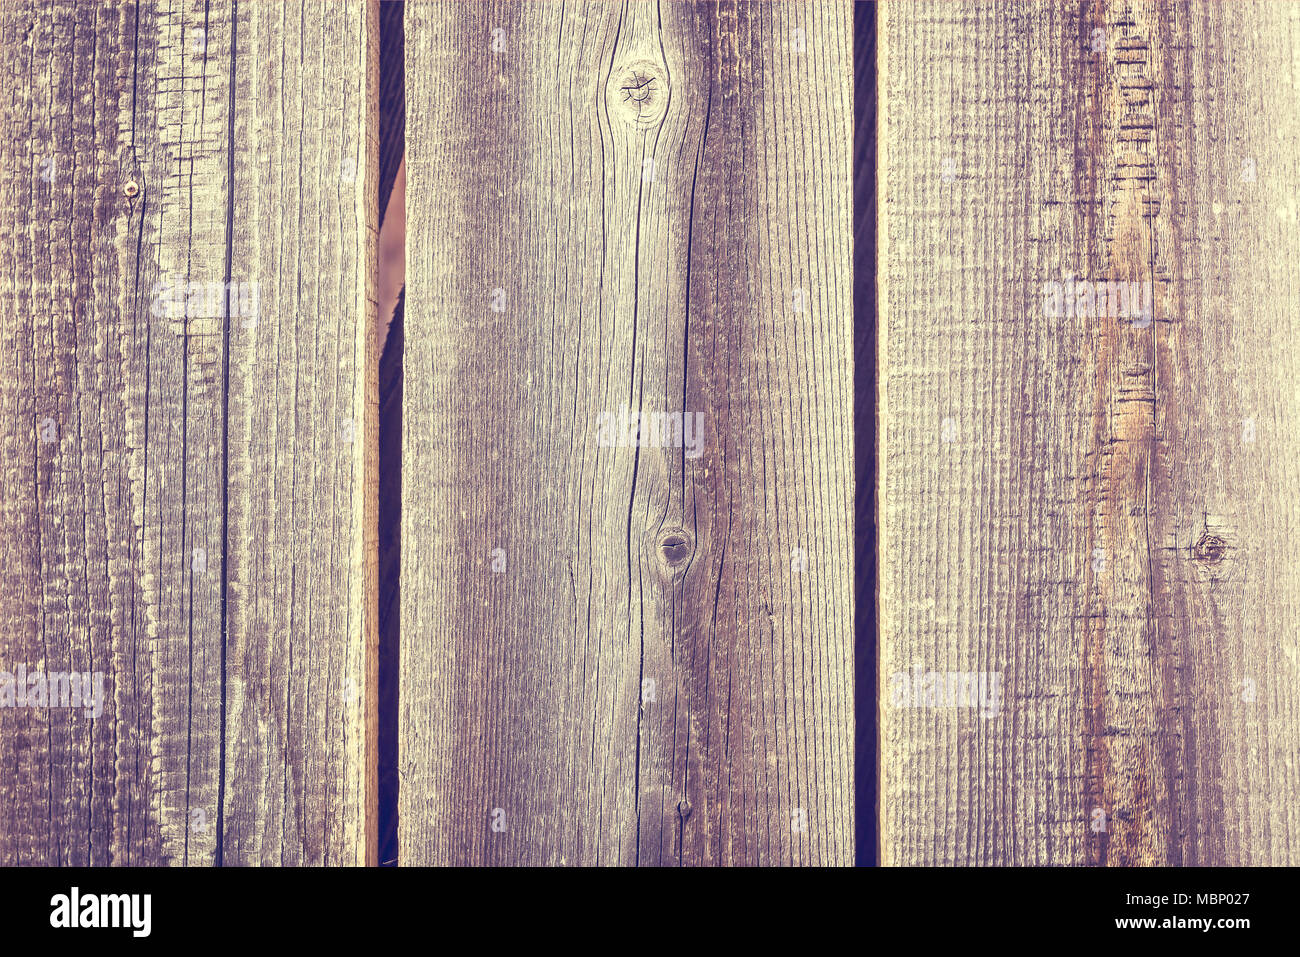 Wood Texture Background Mottled Structure Stockfotos Wood Texture